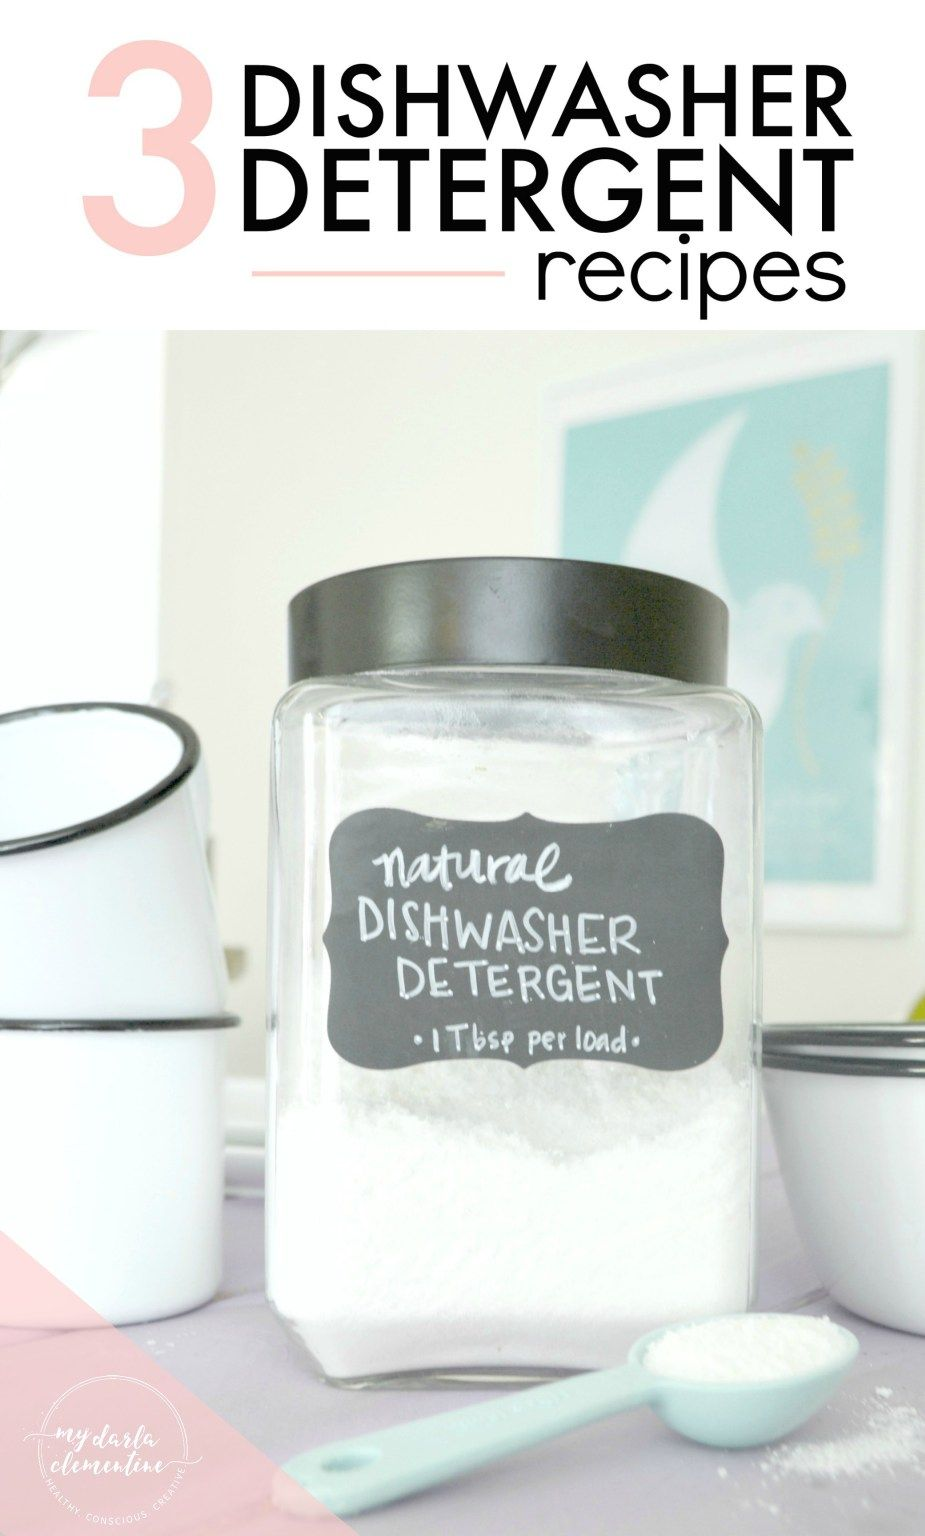 3 Natural Dishwasher Detergent Recipes For Sparkling Dishes My Darla Clementine Dishwasher Detergent Recipe Natural Dishwasher Detergent Detergent Recipe